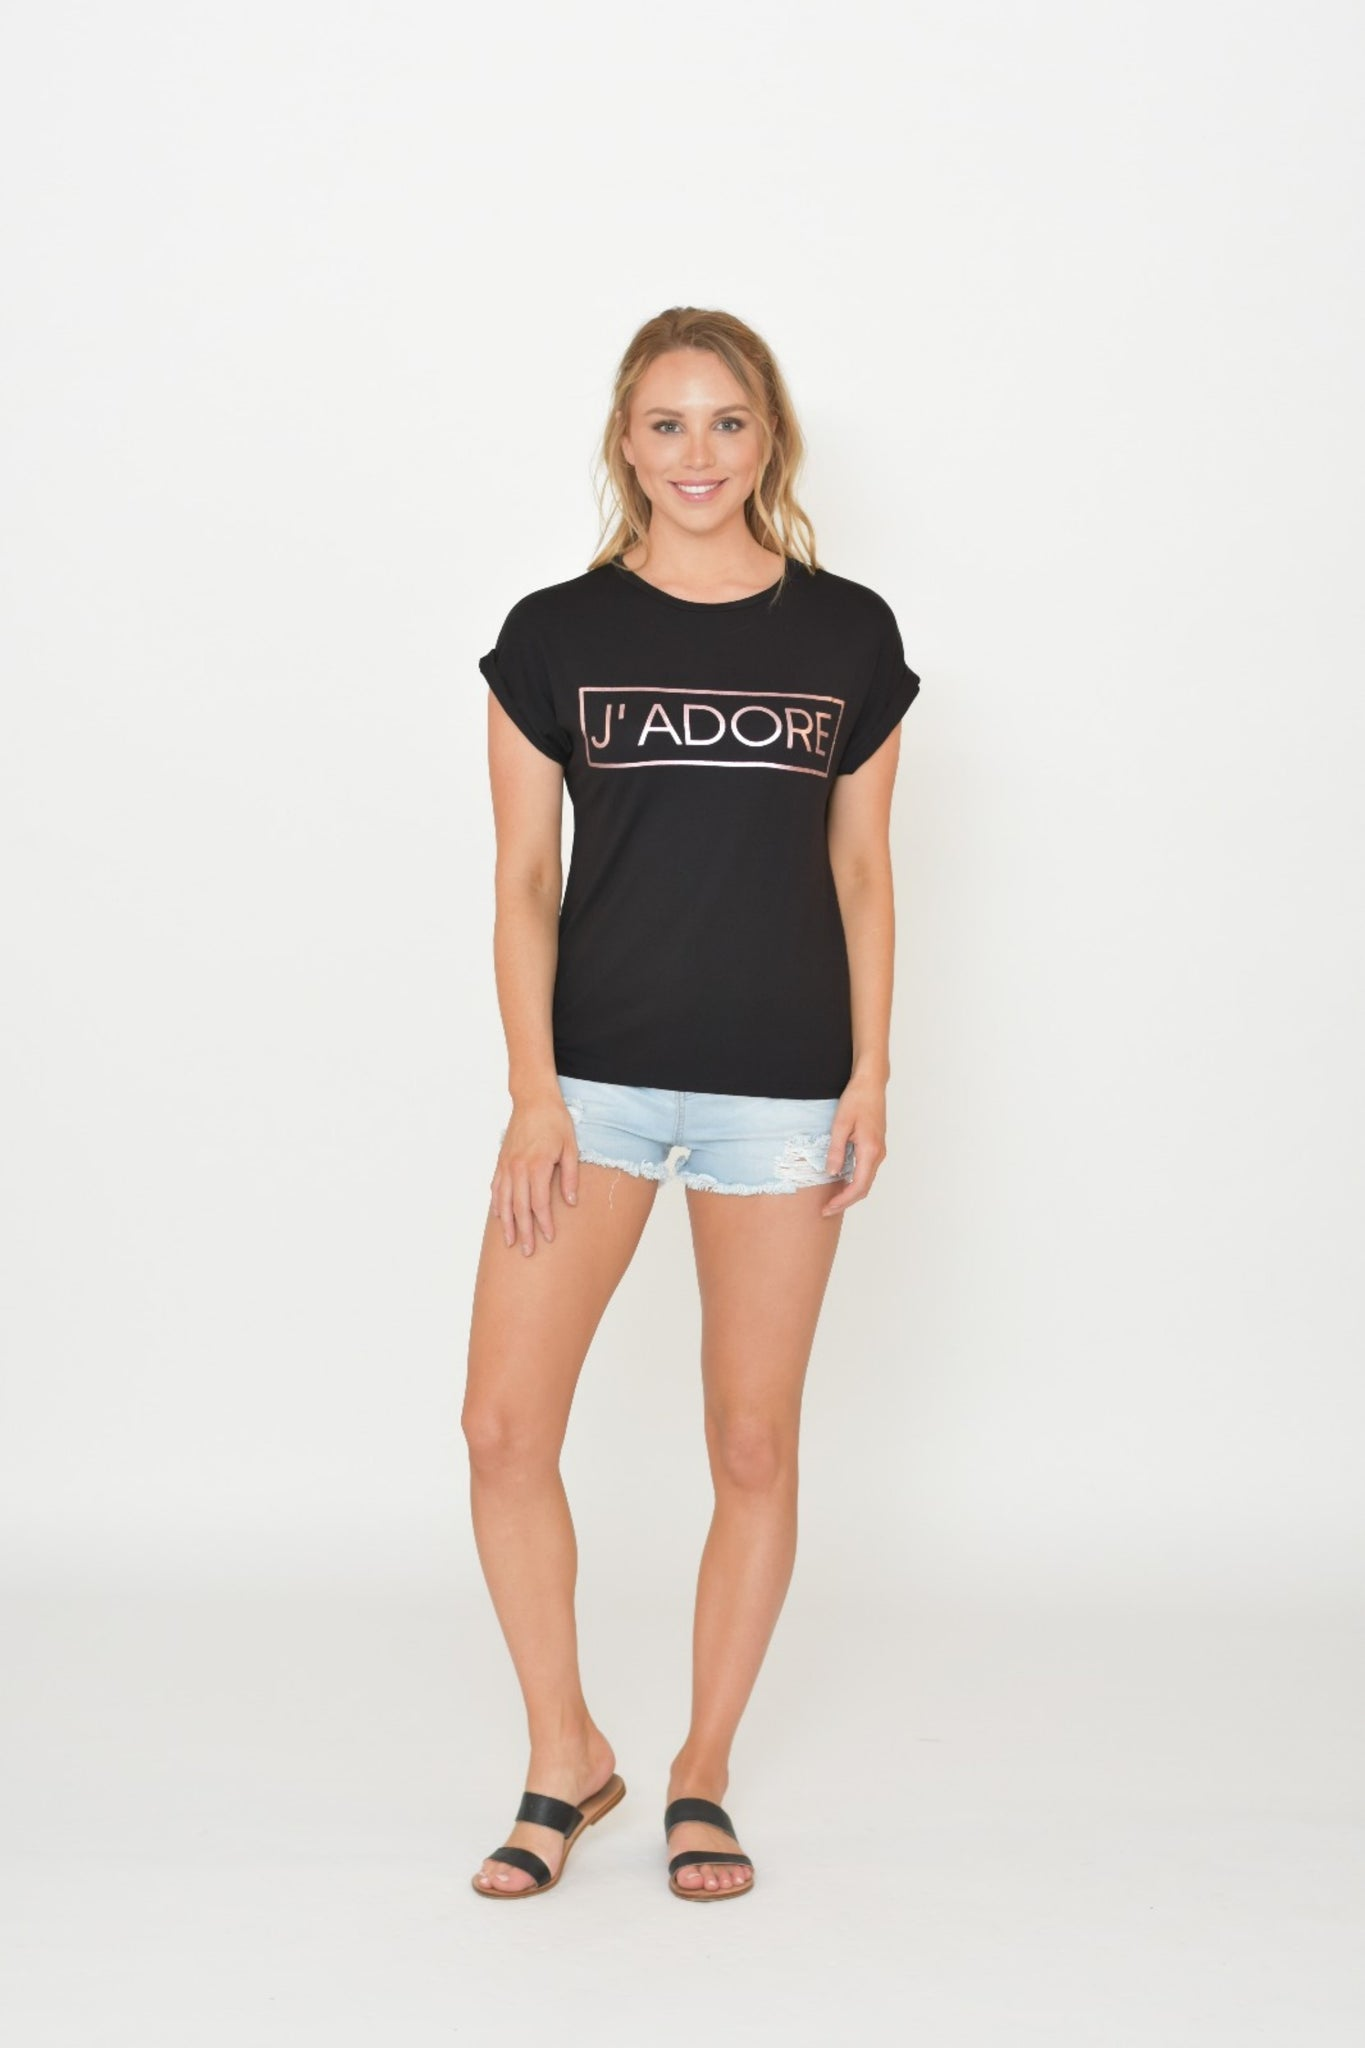 J'Adore T-shirt in Black